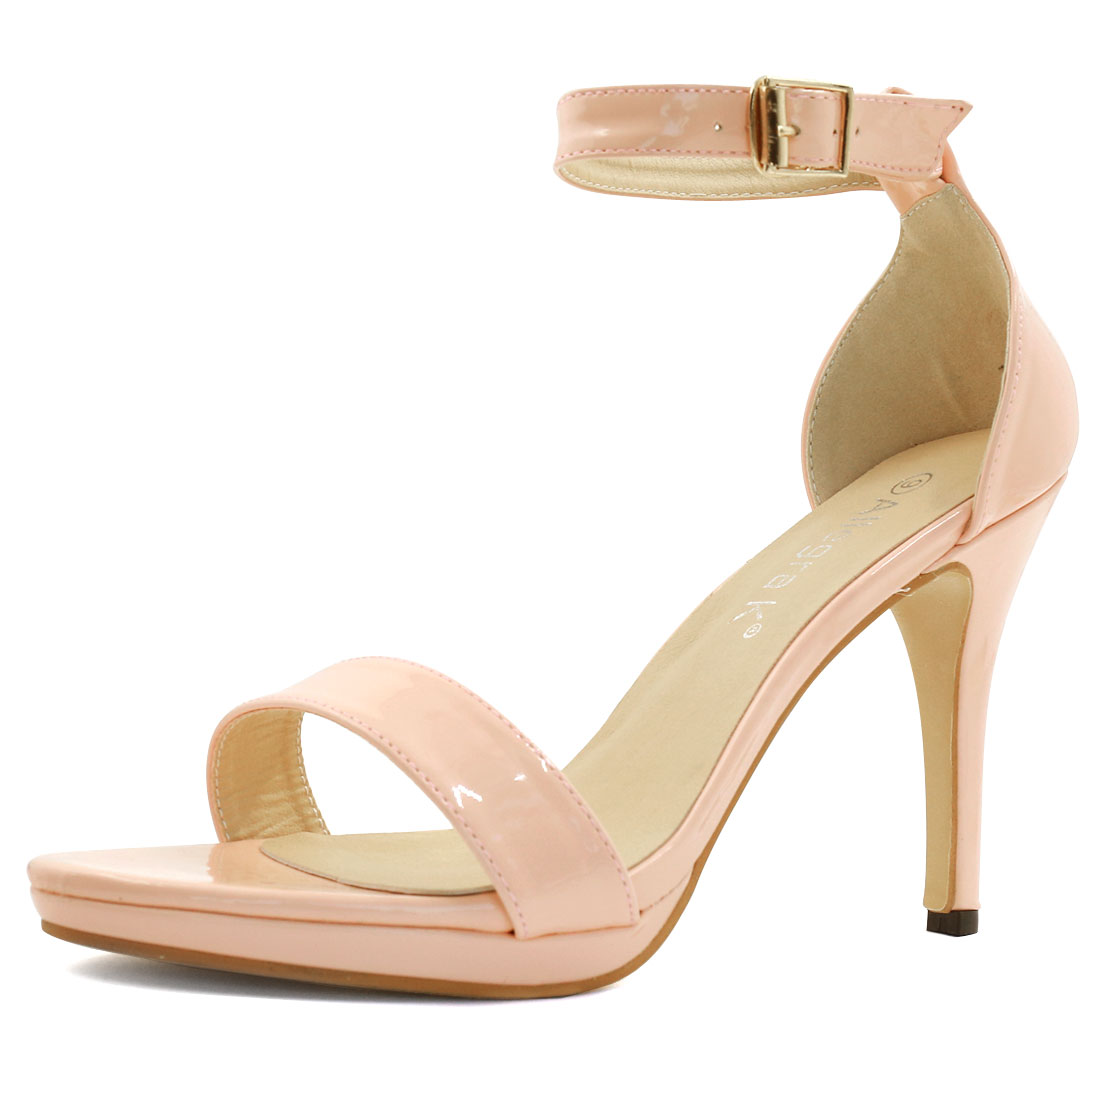 Woman Open Toe High Heel Metallic Ankle Strap Sandals Pink US 8